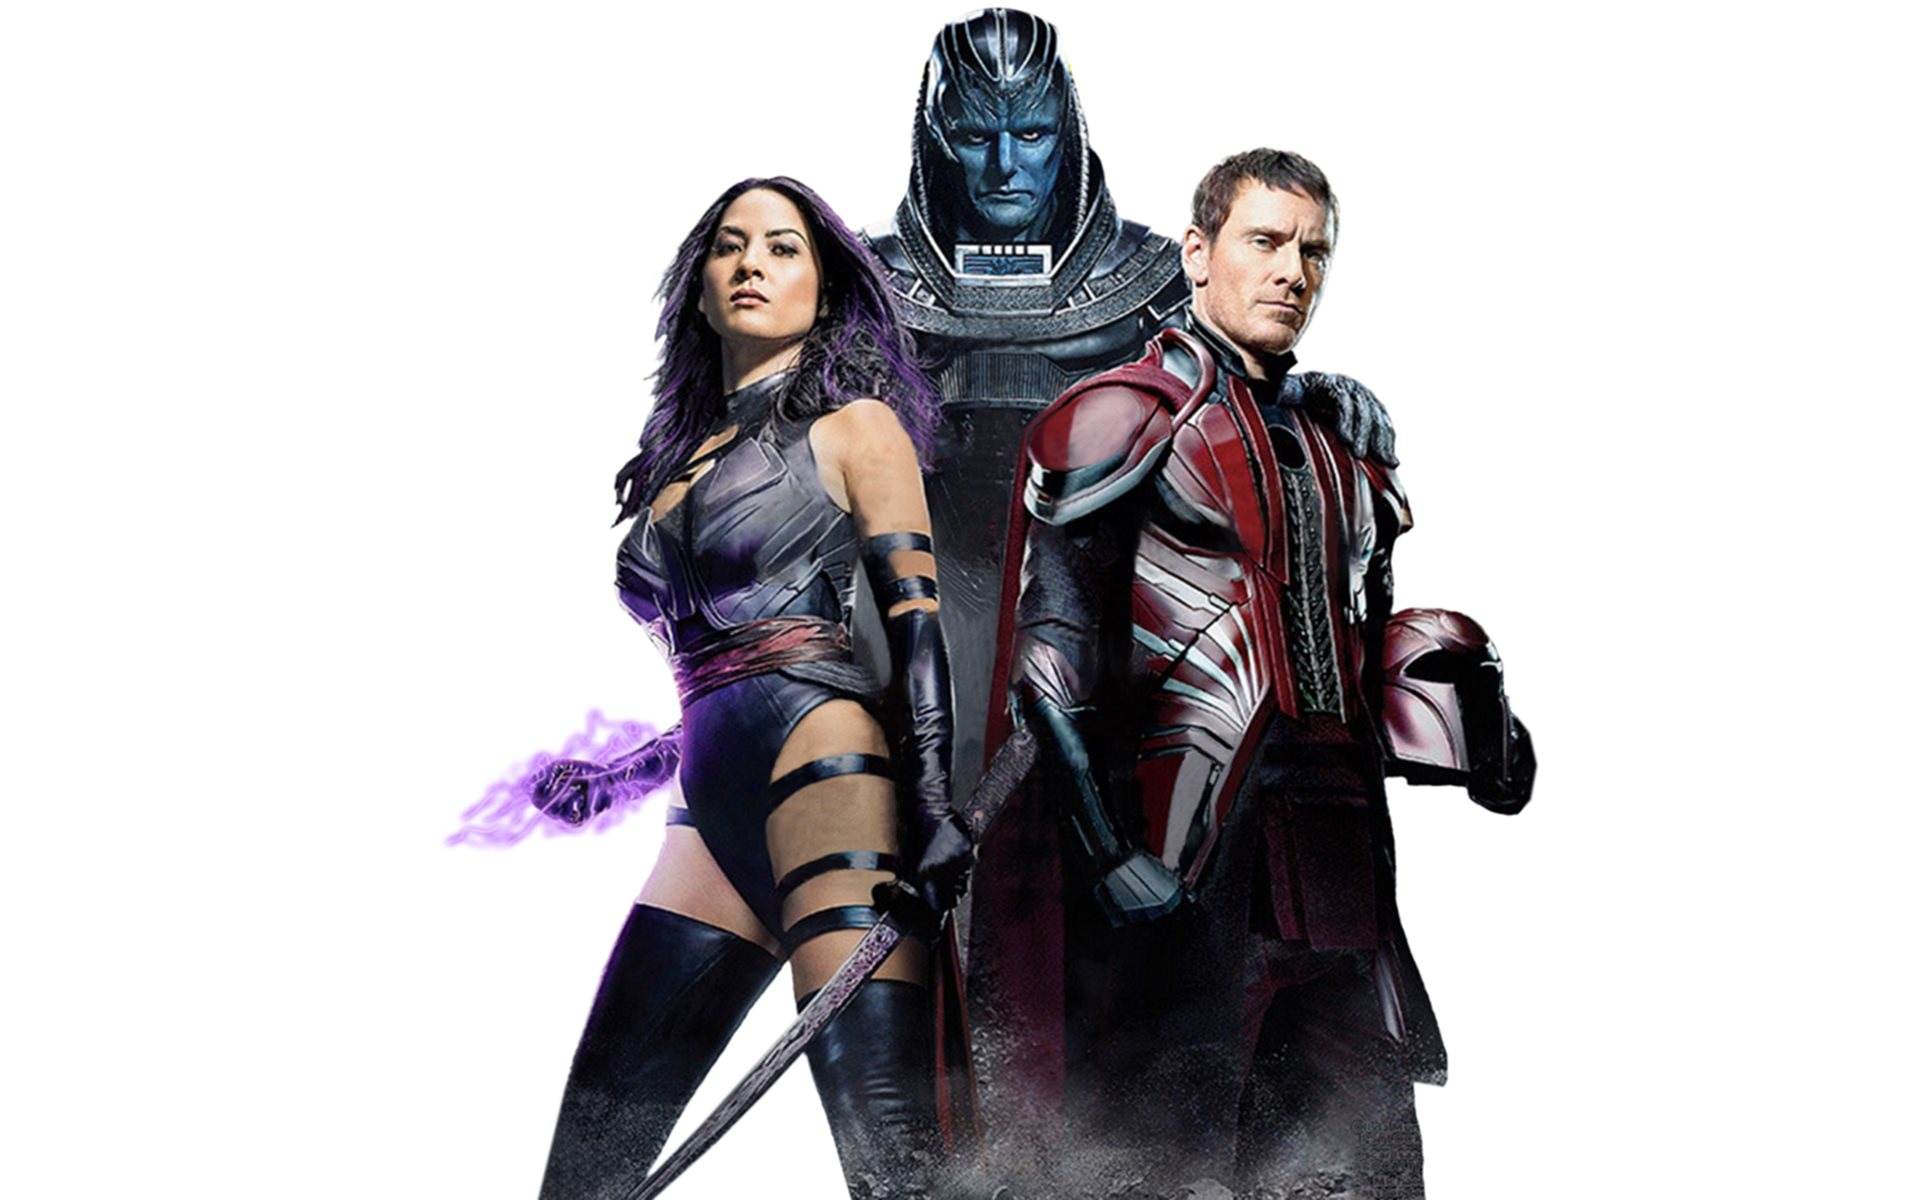 X Men Apocalypse 2016 Wallpaper - WallpaperSafari